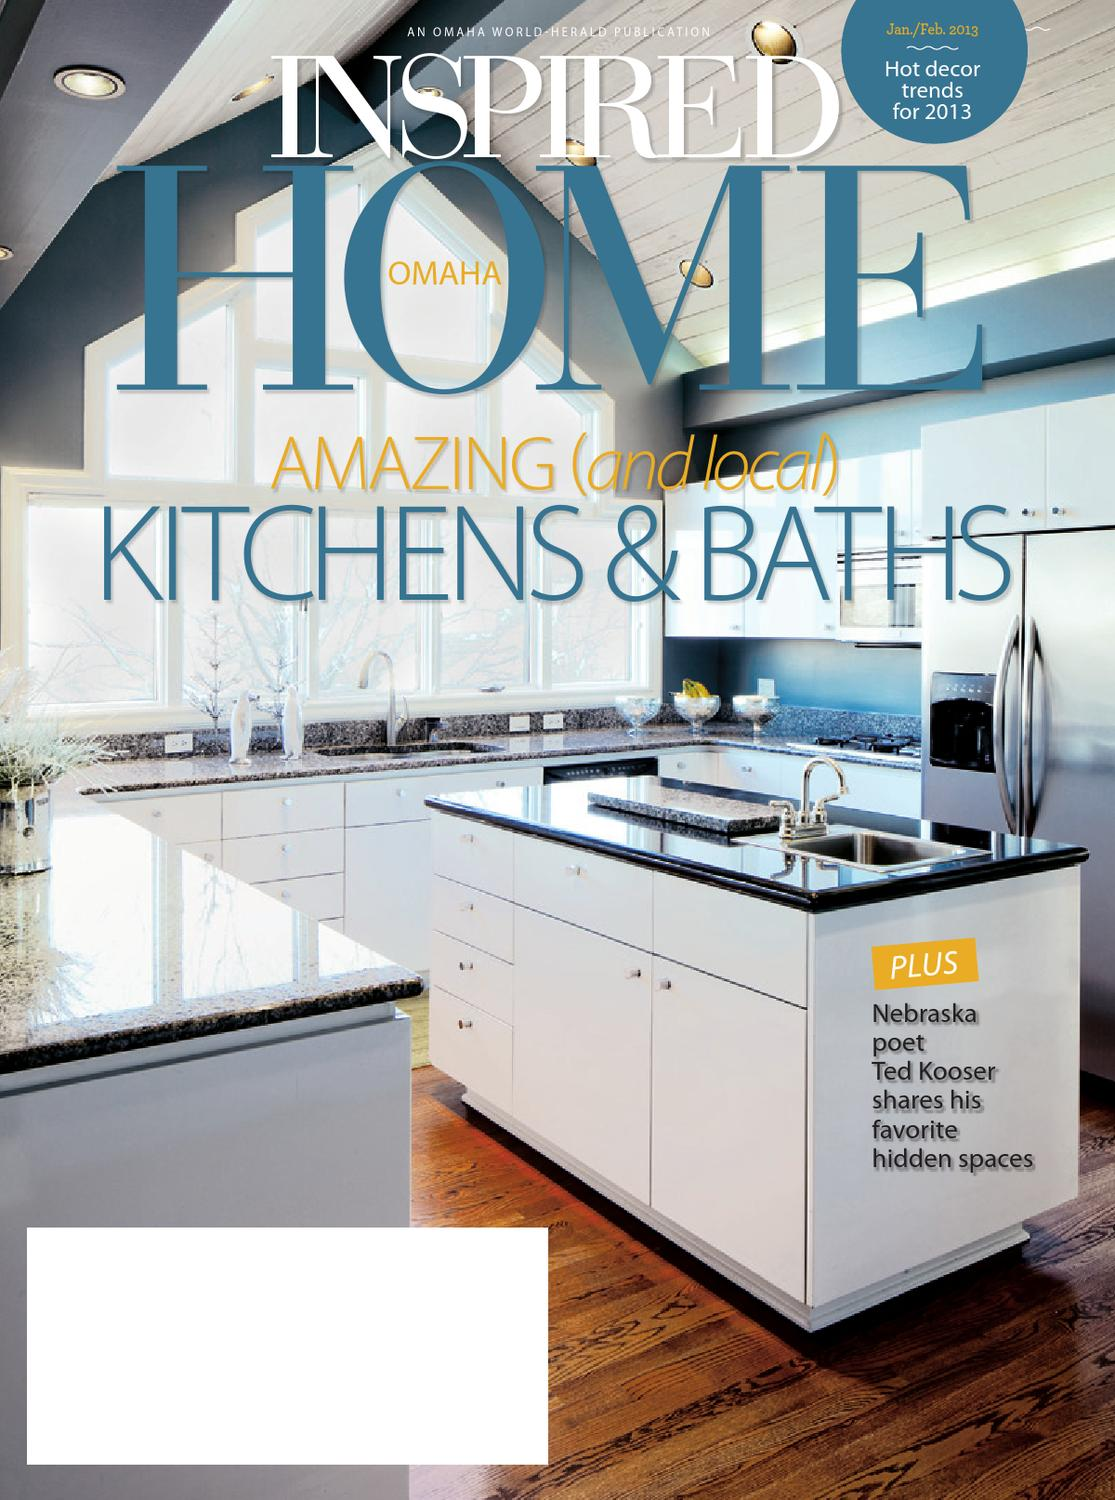 Kitchen And Bath Design Omaha Inspired Home Omaha By Omaha World Herald Issuu